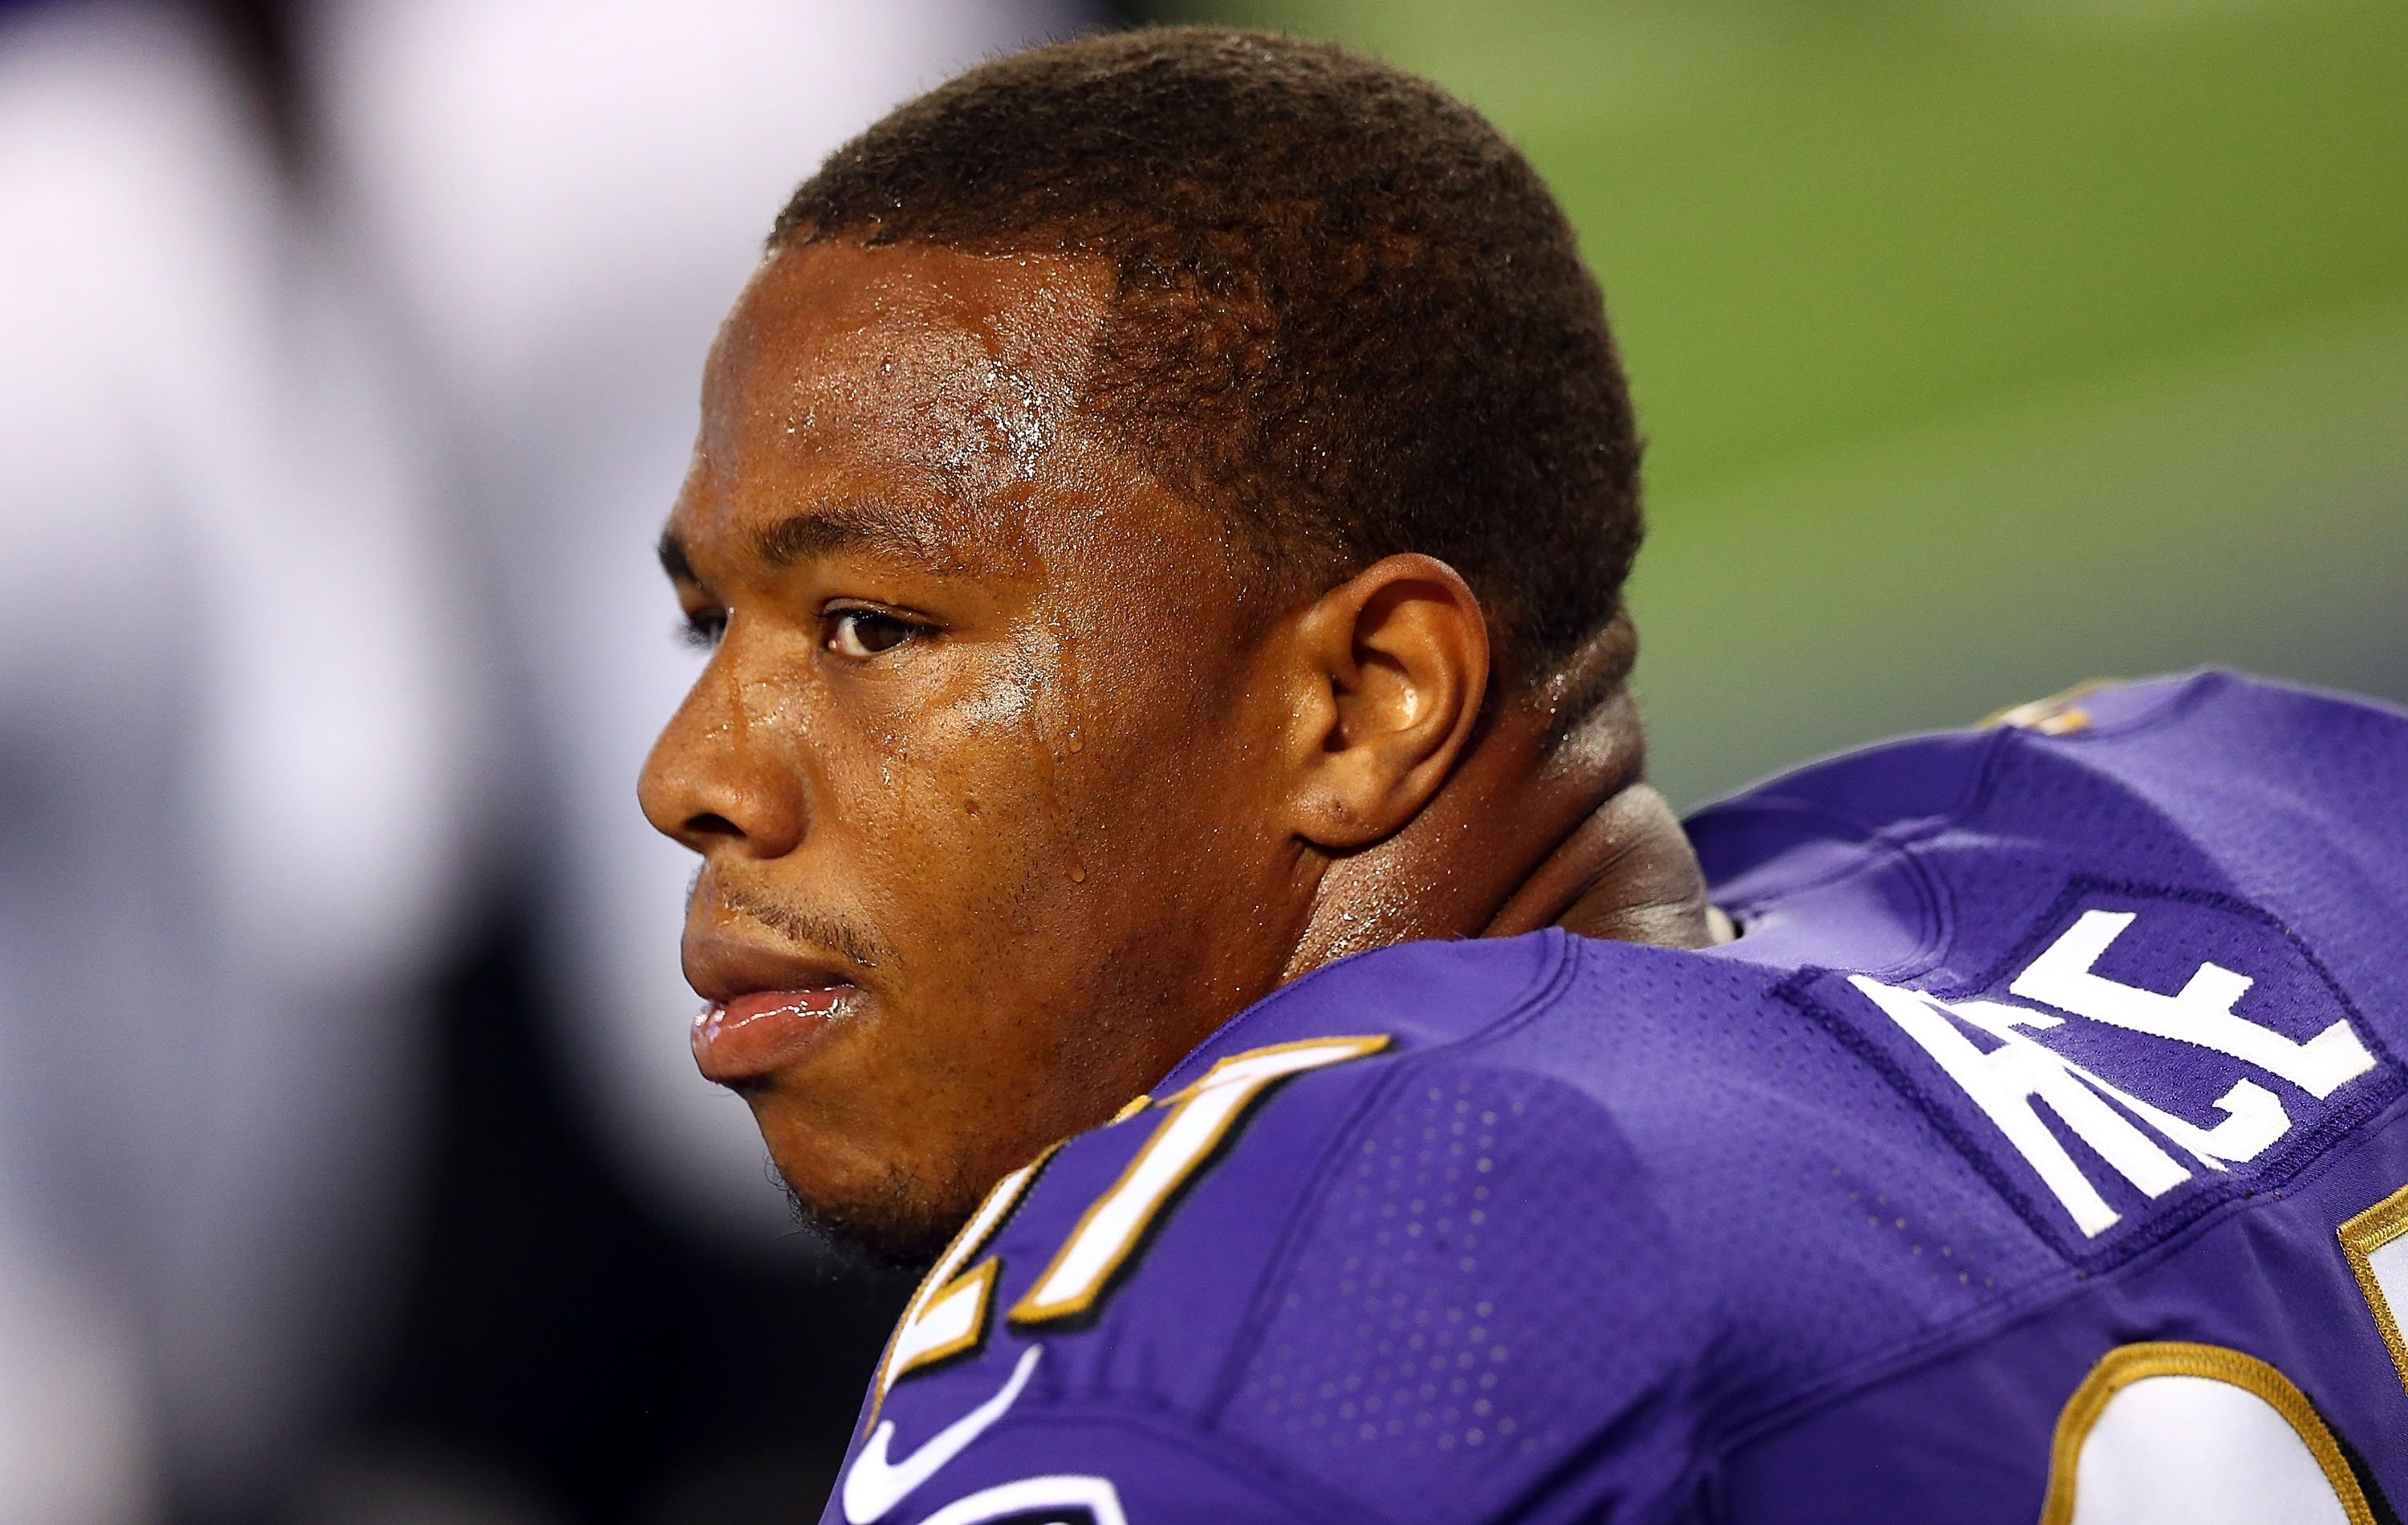 Ray Rice of the Baltimore Ravens sits on the bench against the Dallas Cowboys in the first half of their preseason game on Aug. 16, 2014 in Arlington, Texas.